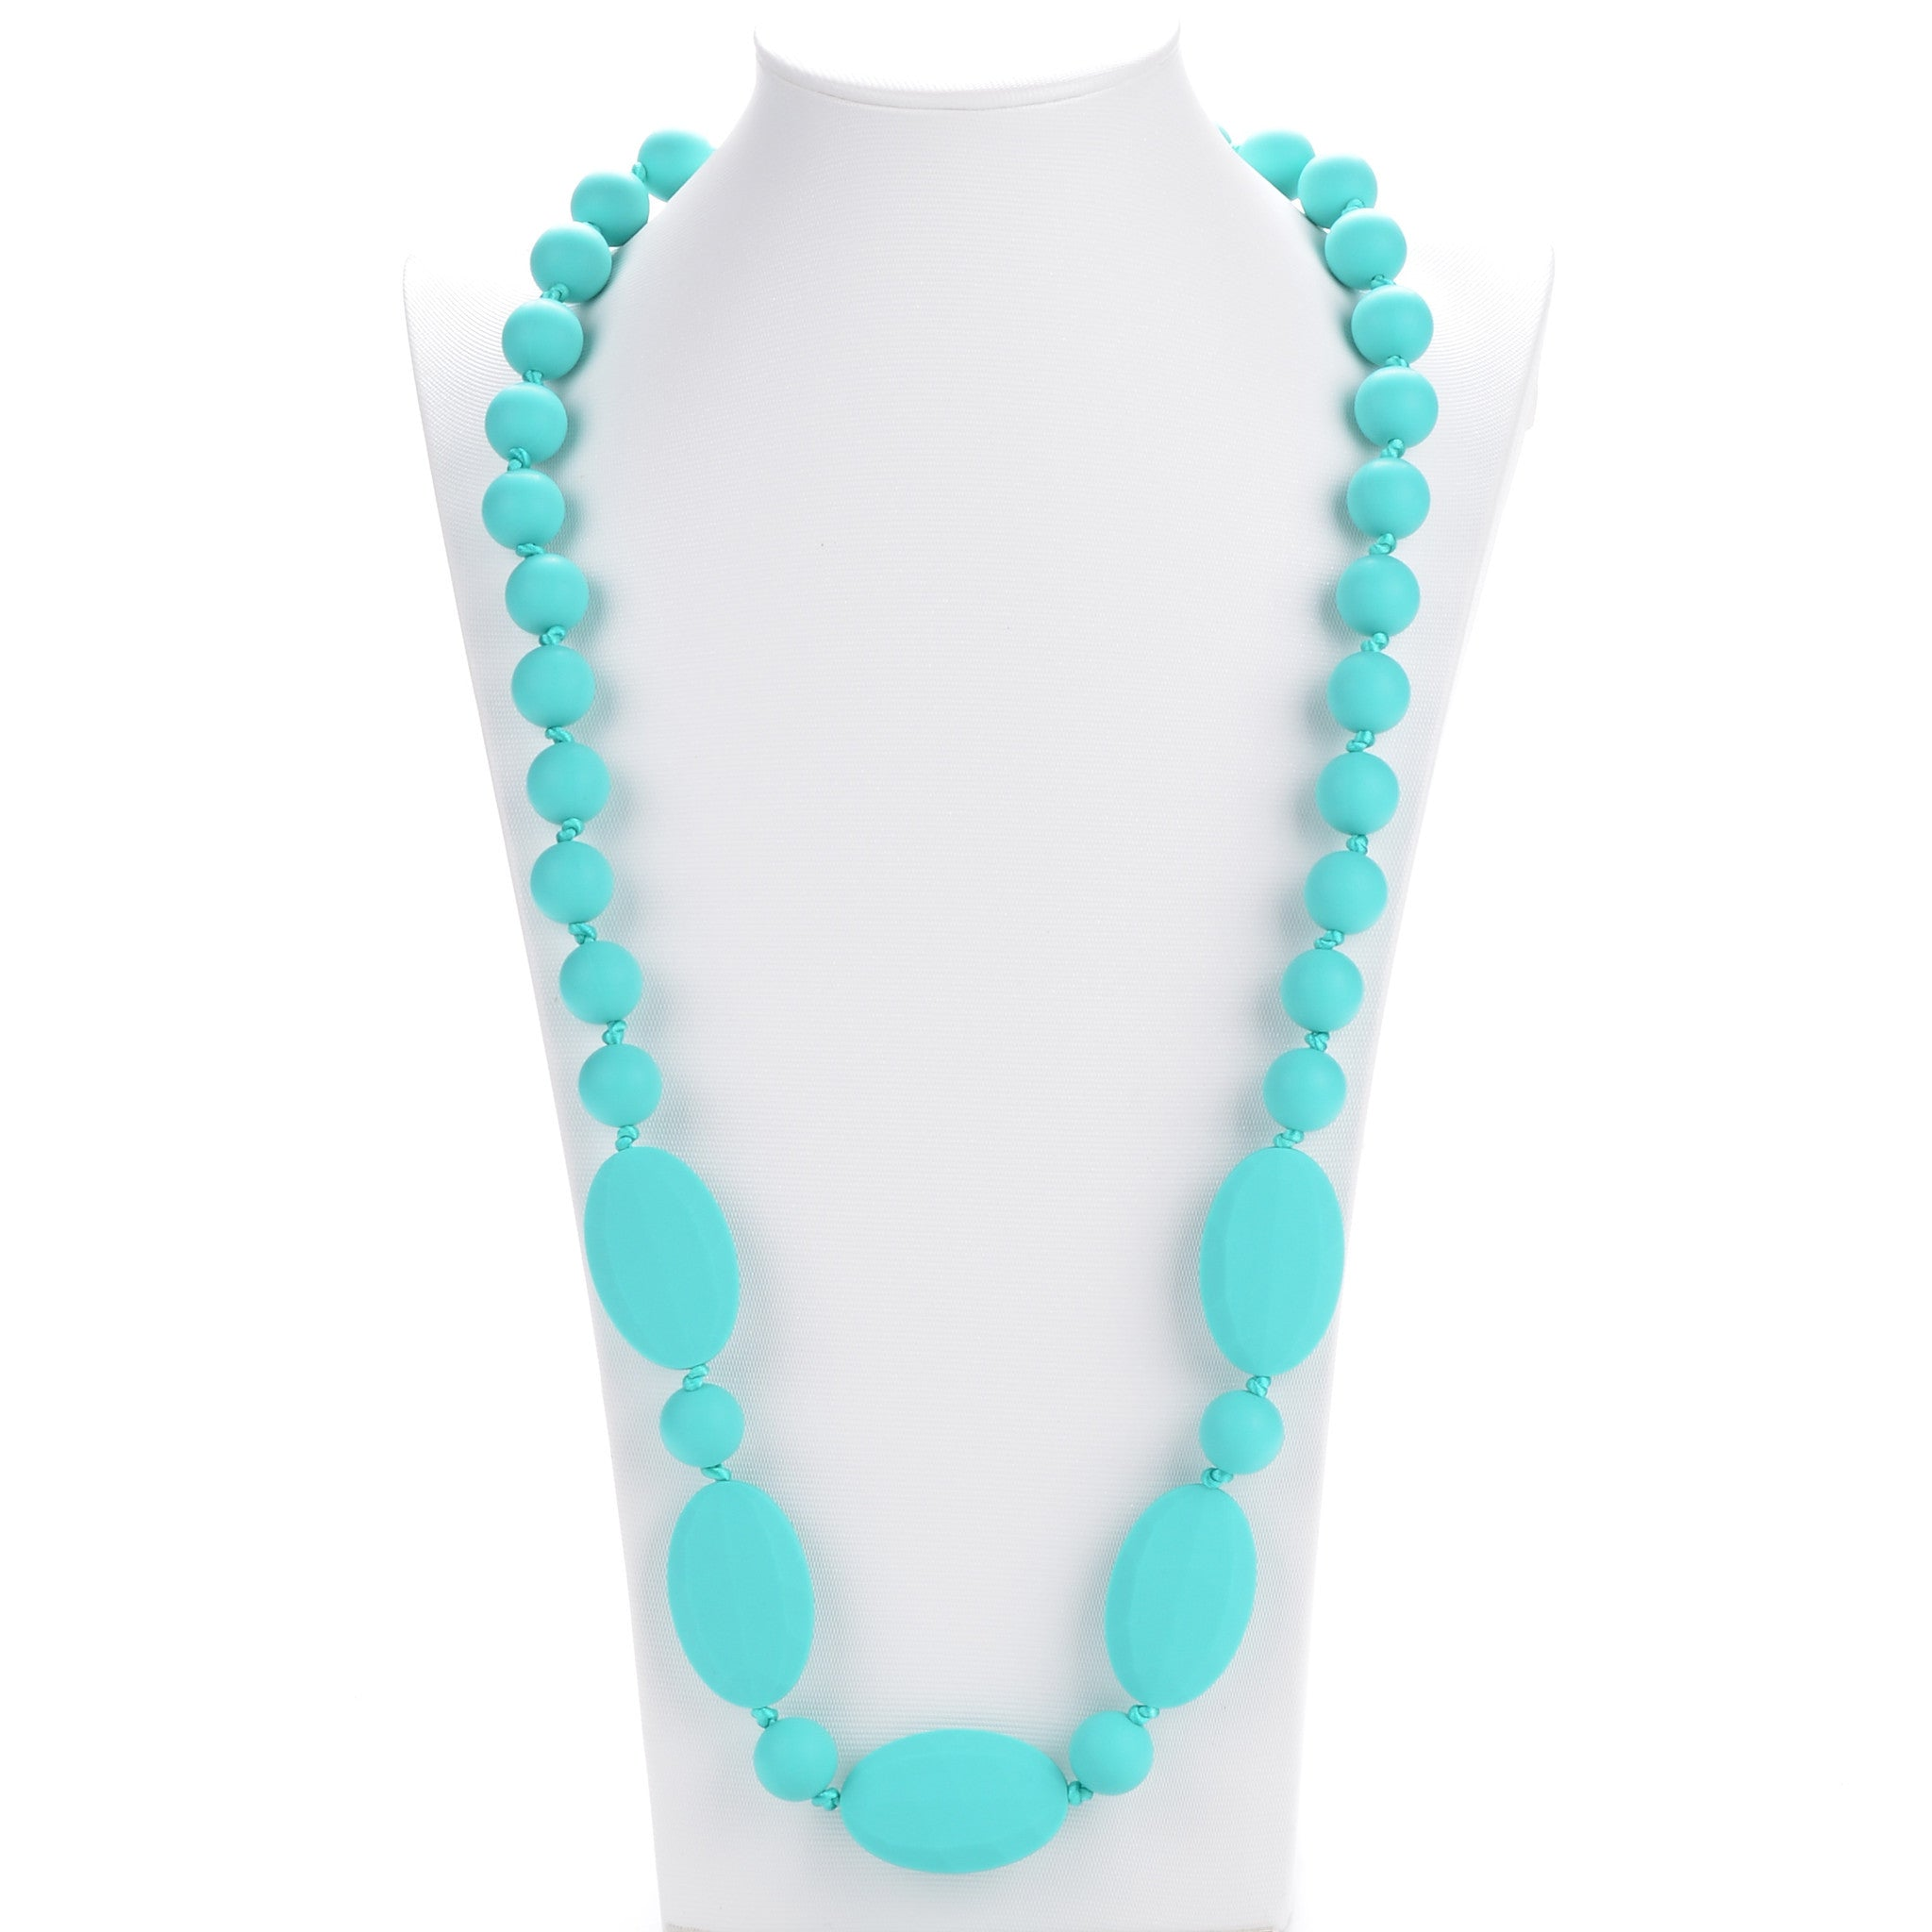 marble necklace img silicone nursing from gift products teething mumma necklaces boutique three chew set one